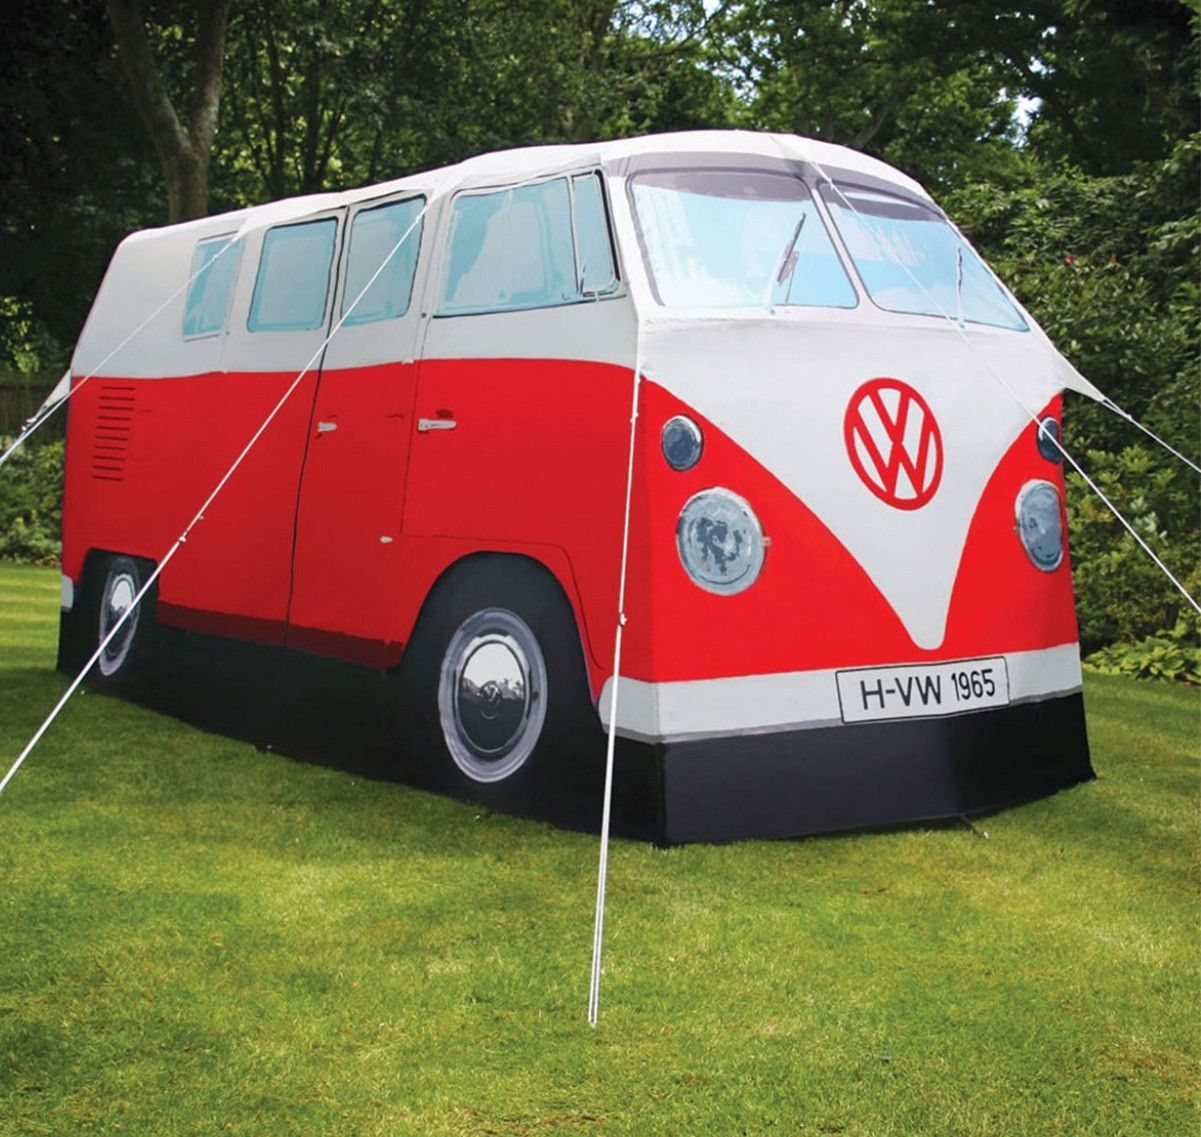 VW C&er Bus Adult Tent (Red) & VW Camper Bus Adult Tent (Red) | Vw camper bus Tents and Products